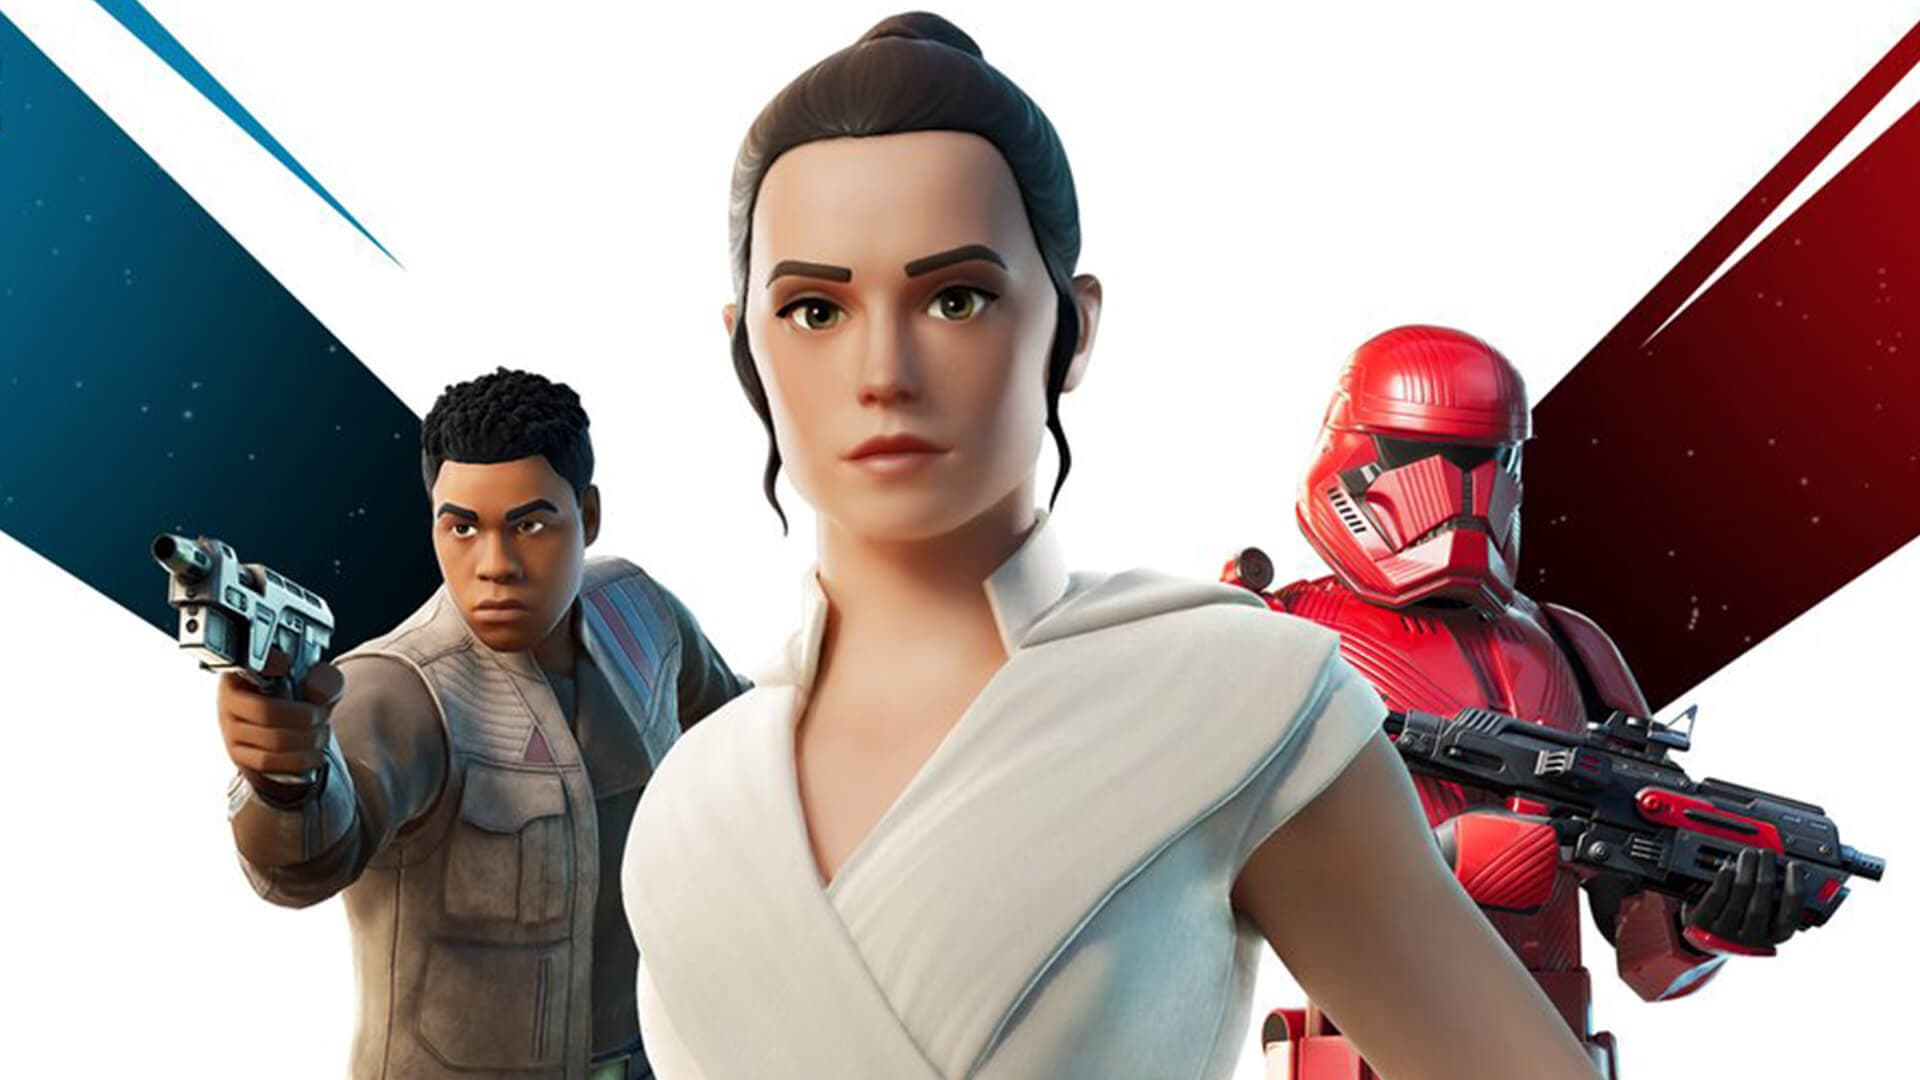 Ya están disponibles los artículos de Star Wars The Rise of Skywalker por tiempo limitado en Fortnite 9